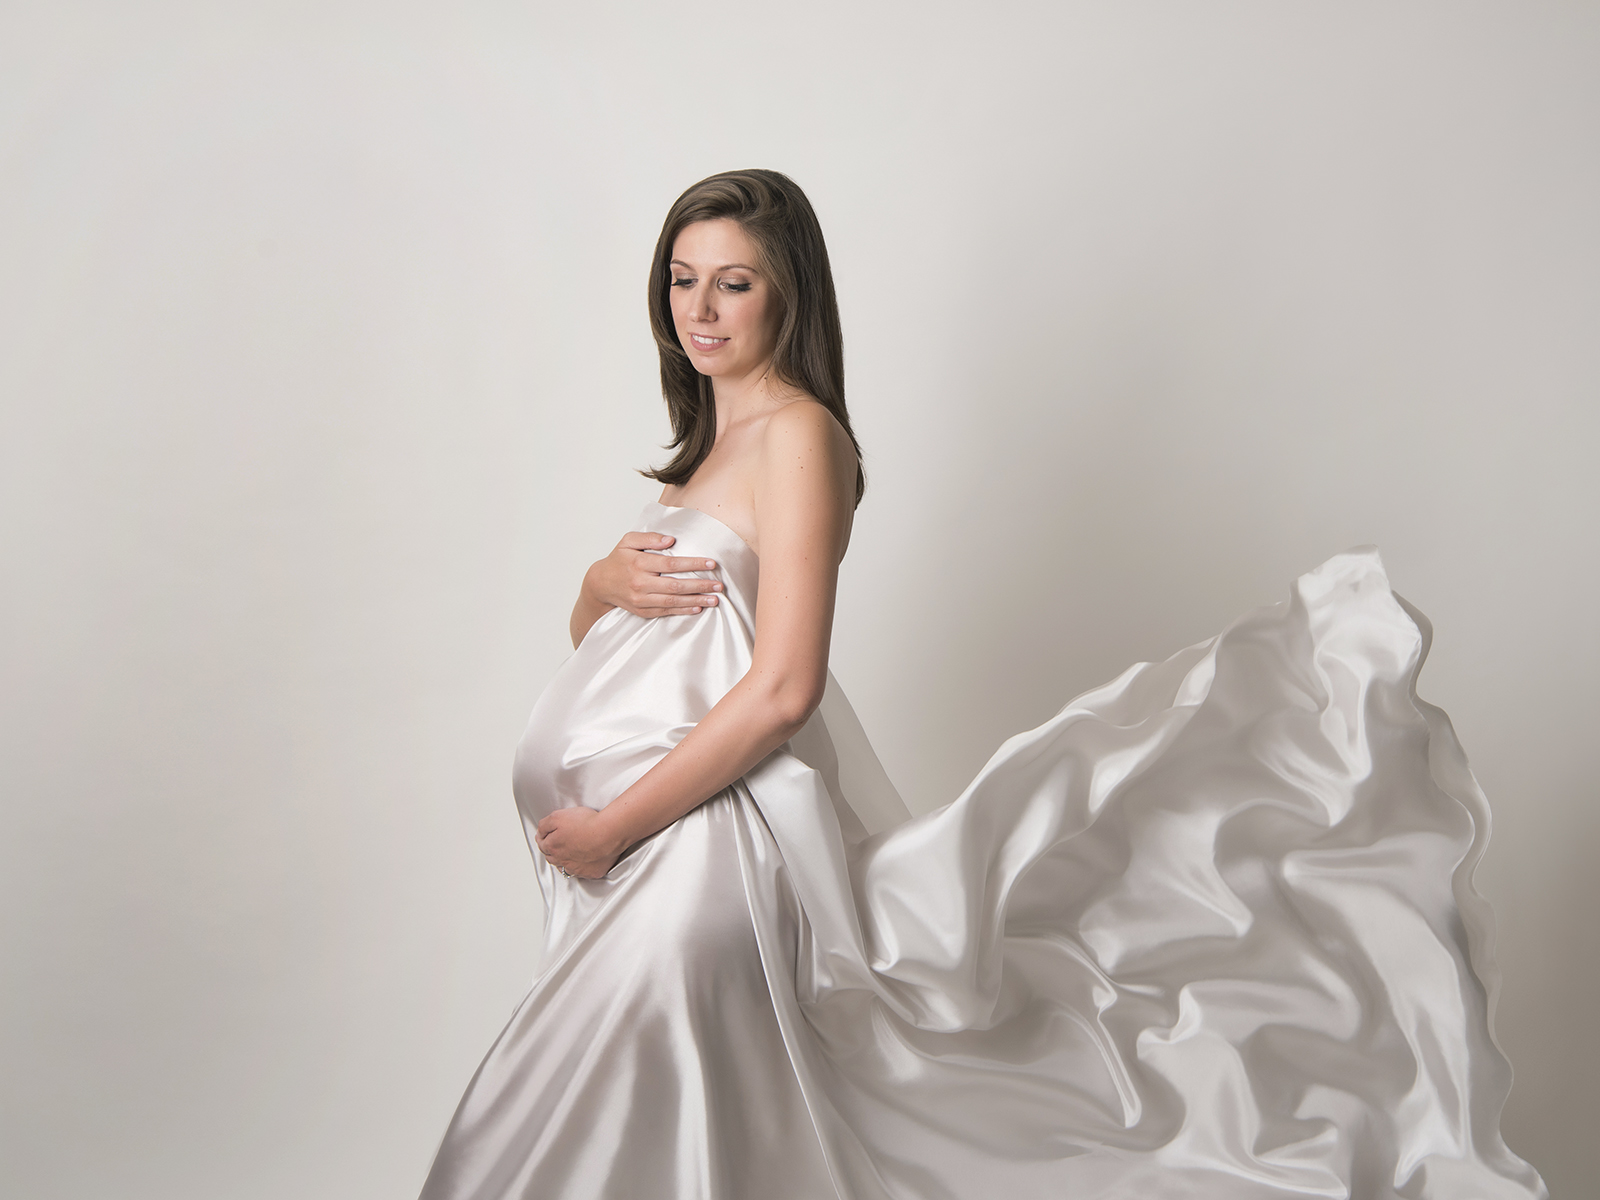 award-winning-maternity-pregnancy-photography-Nemi-Miller